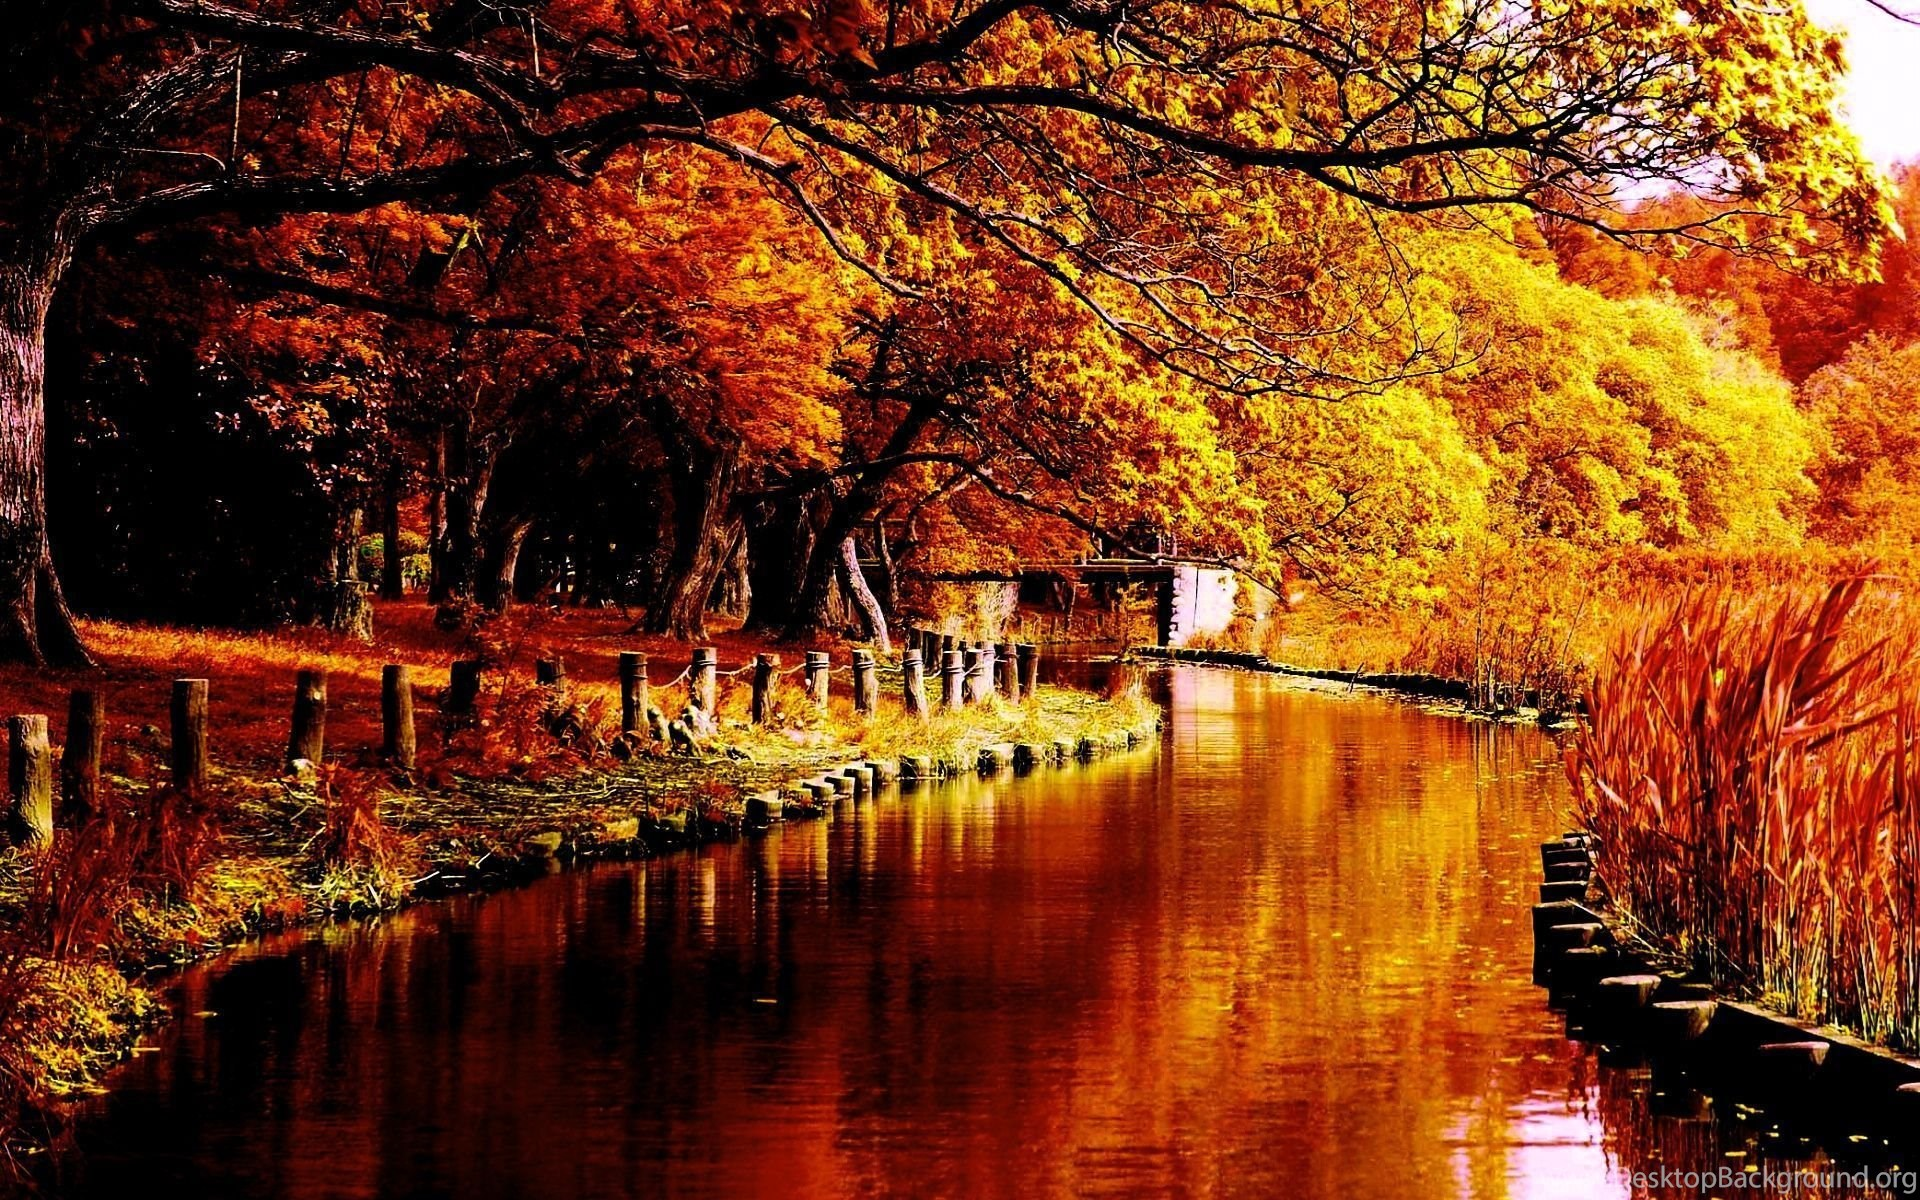 Hd 1080p Fall Wallpaper 79 Images: Autumn Tumblr Wallpapers Picture Desktop Background